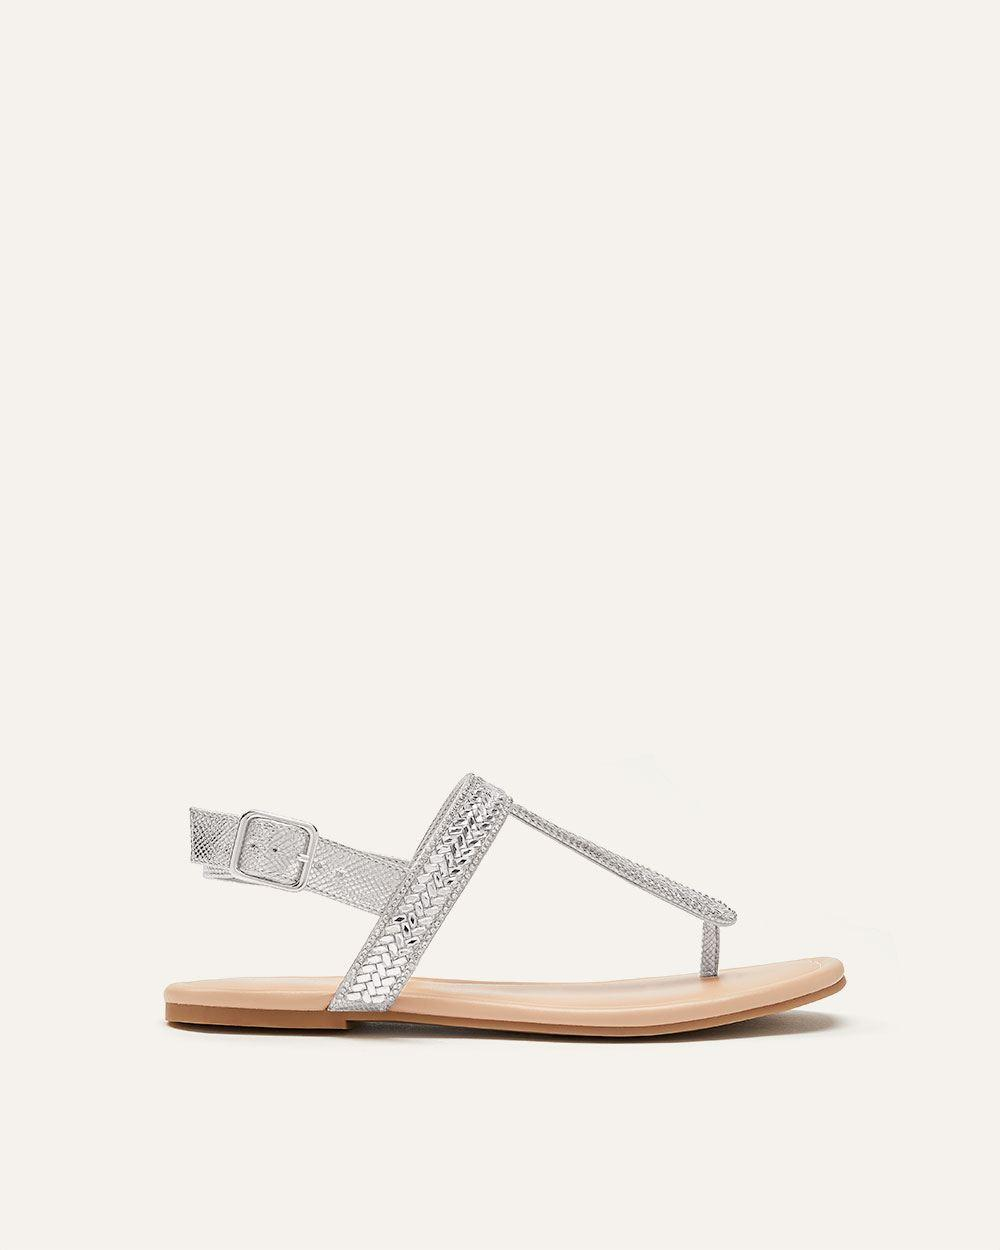 1efebcf244d7e Lyst - Addition Elle Wide Ankle Buckle Thong Sandals in Metallic